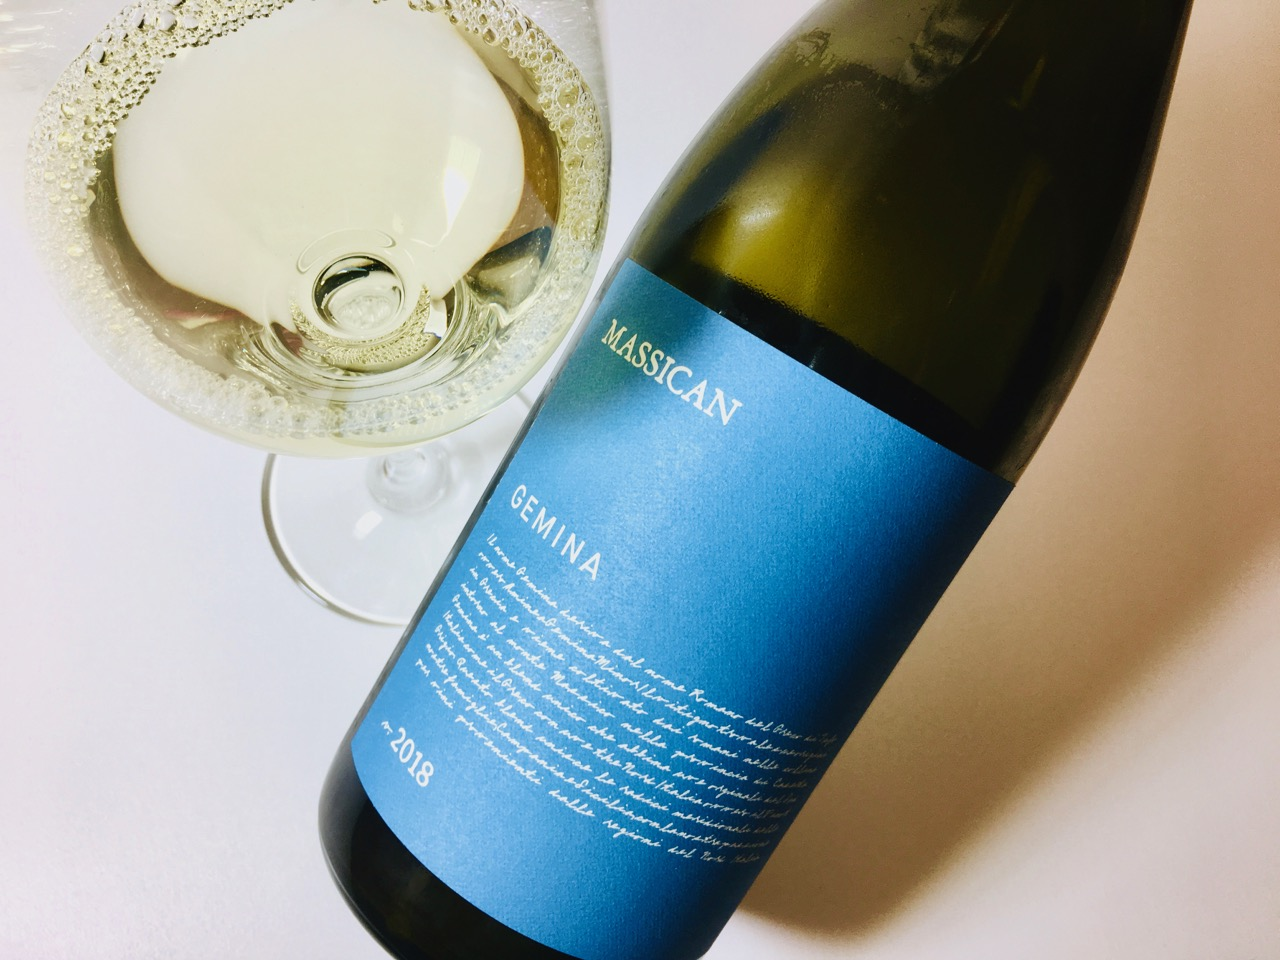 2018 Massican White Wine Gemina California